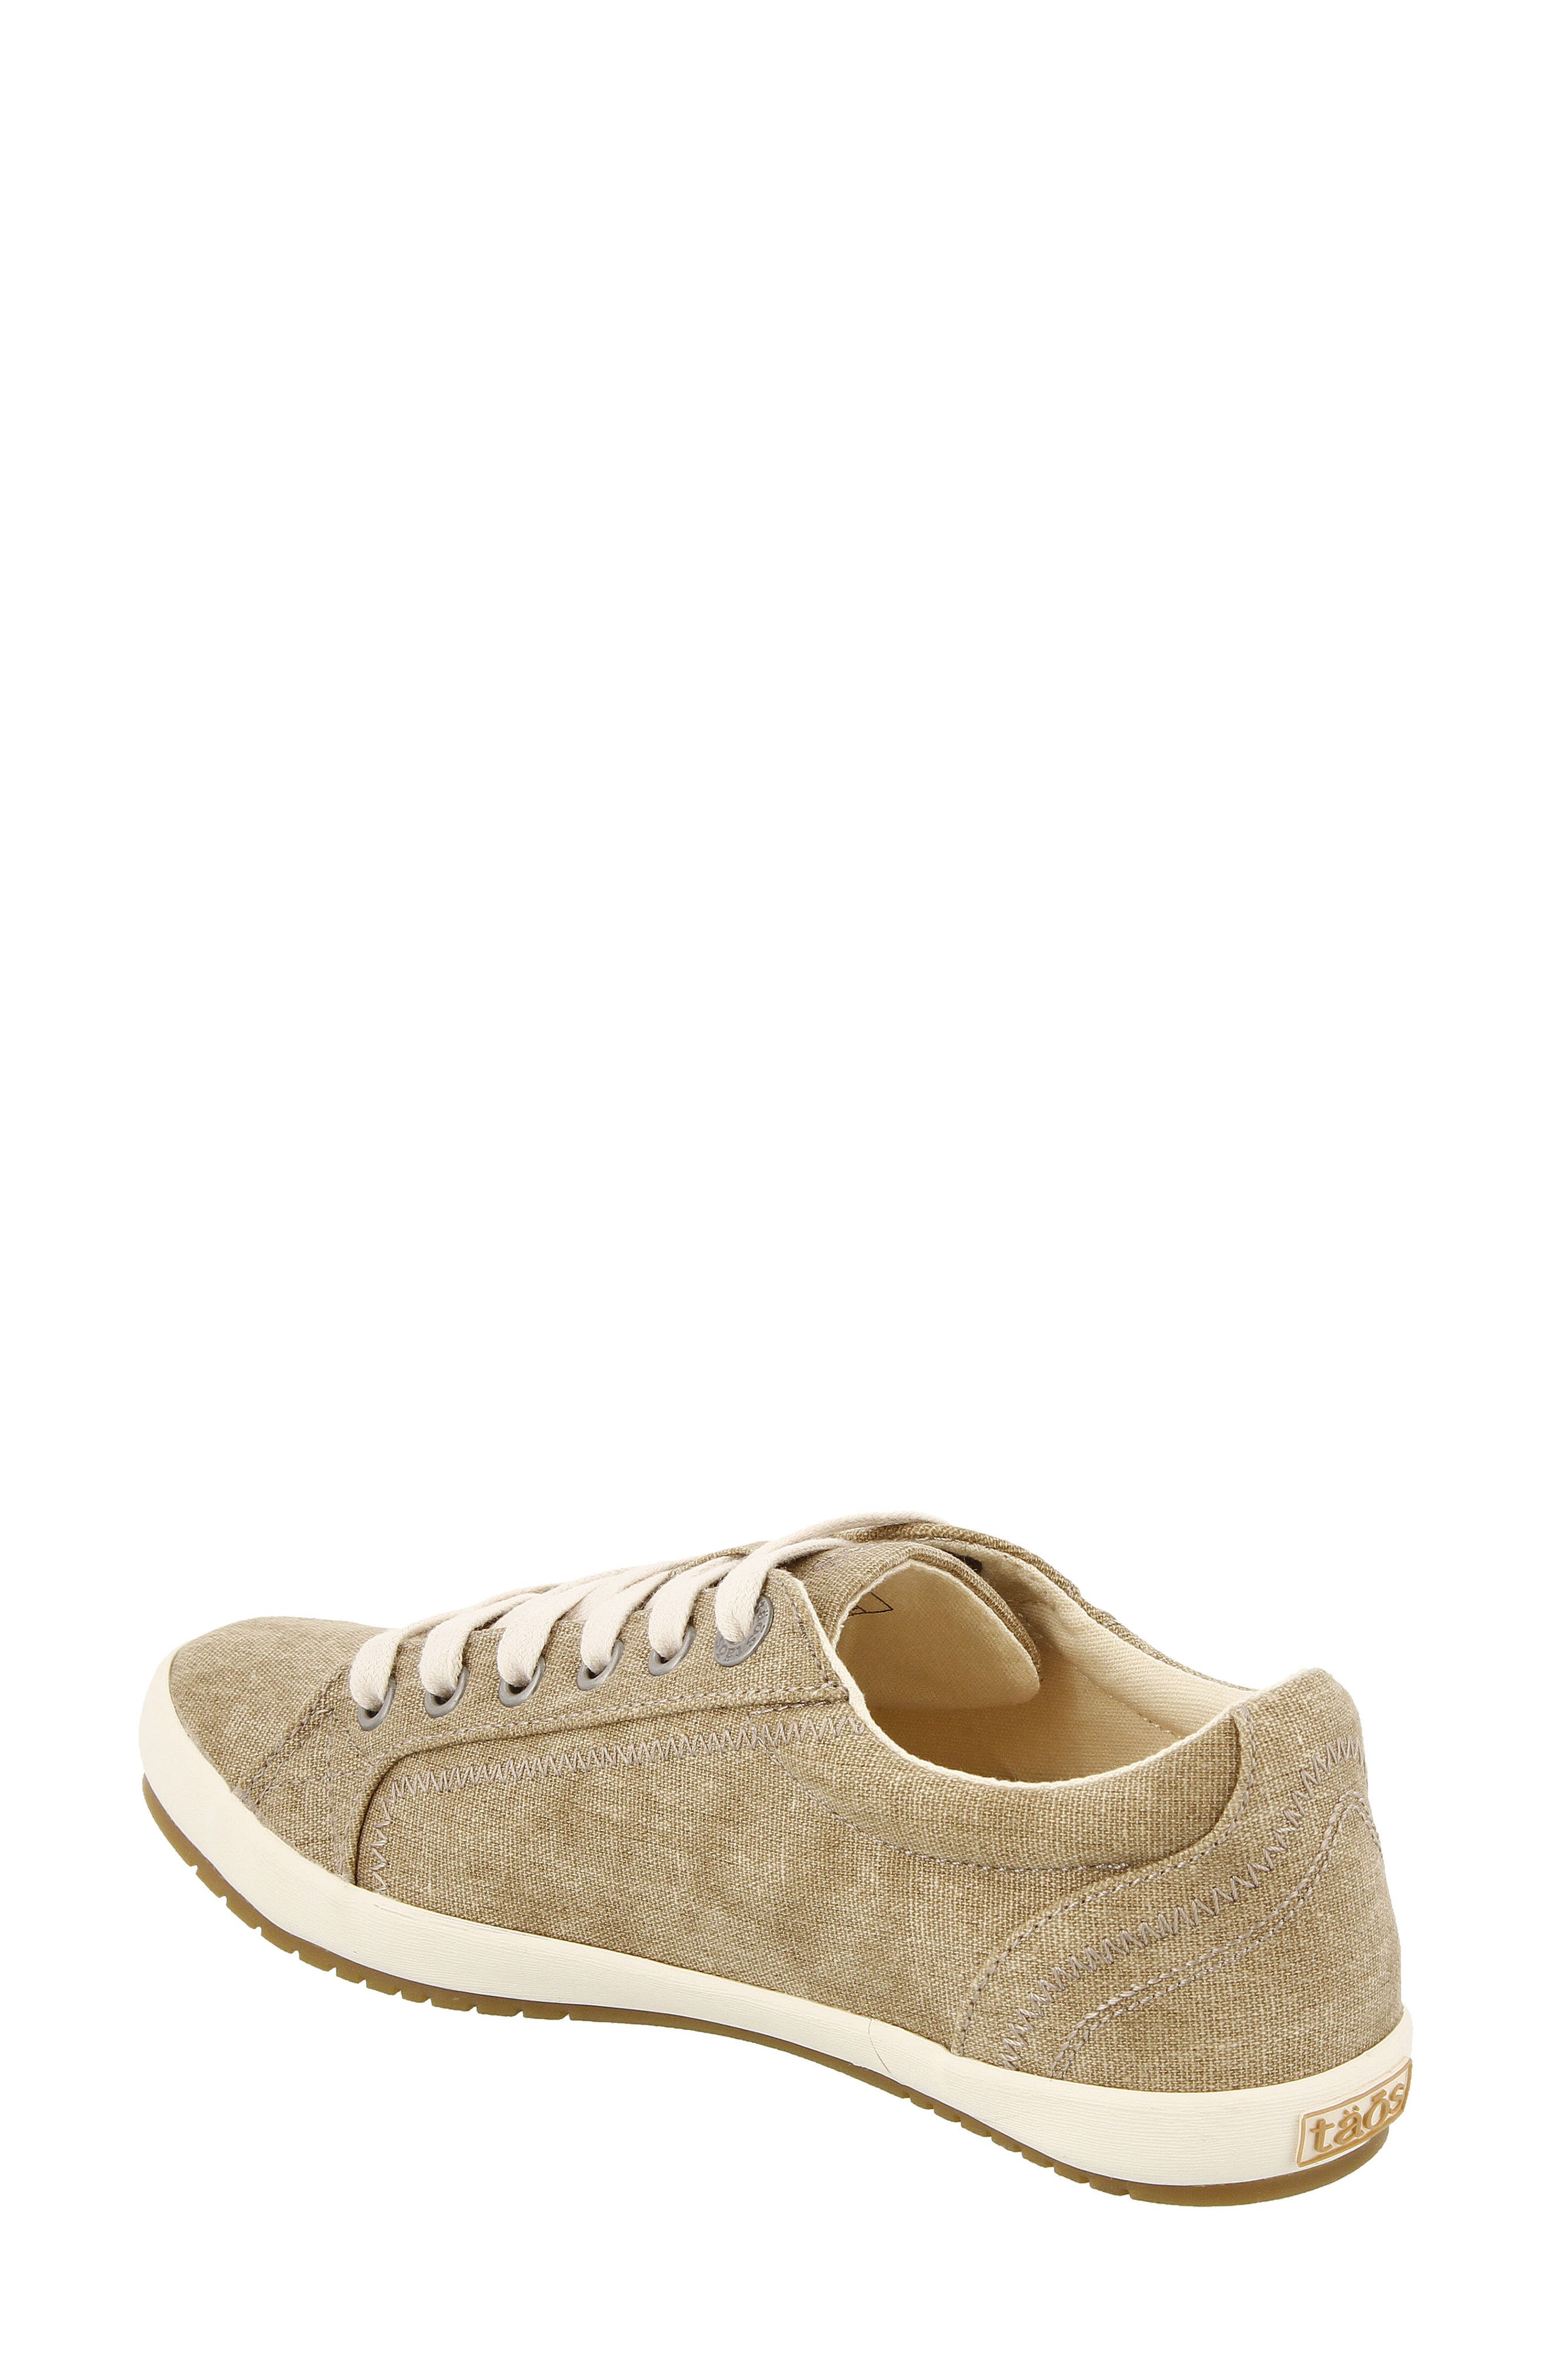 official photos fe396 fa4af Taos All Women   Nordstrom